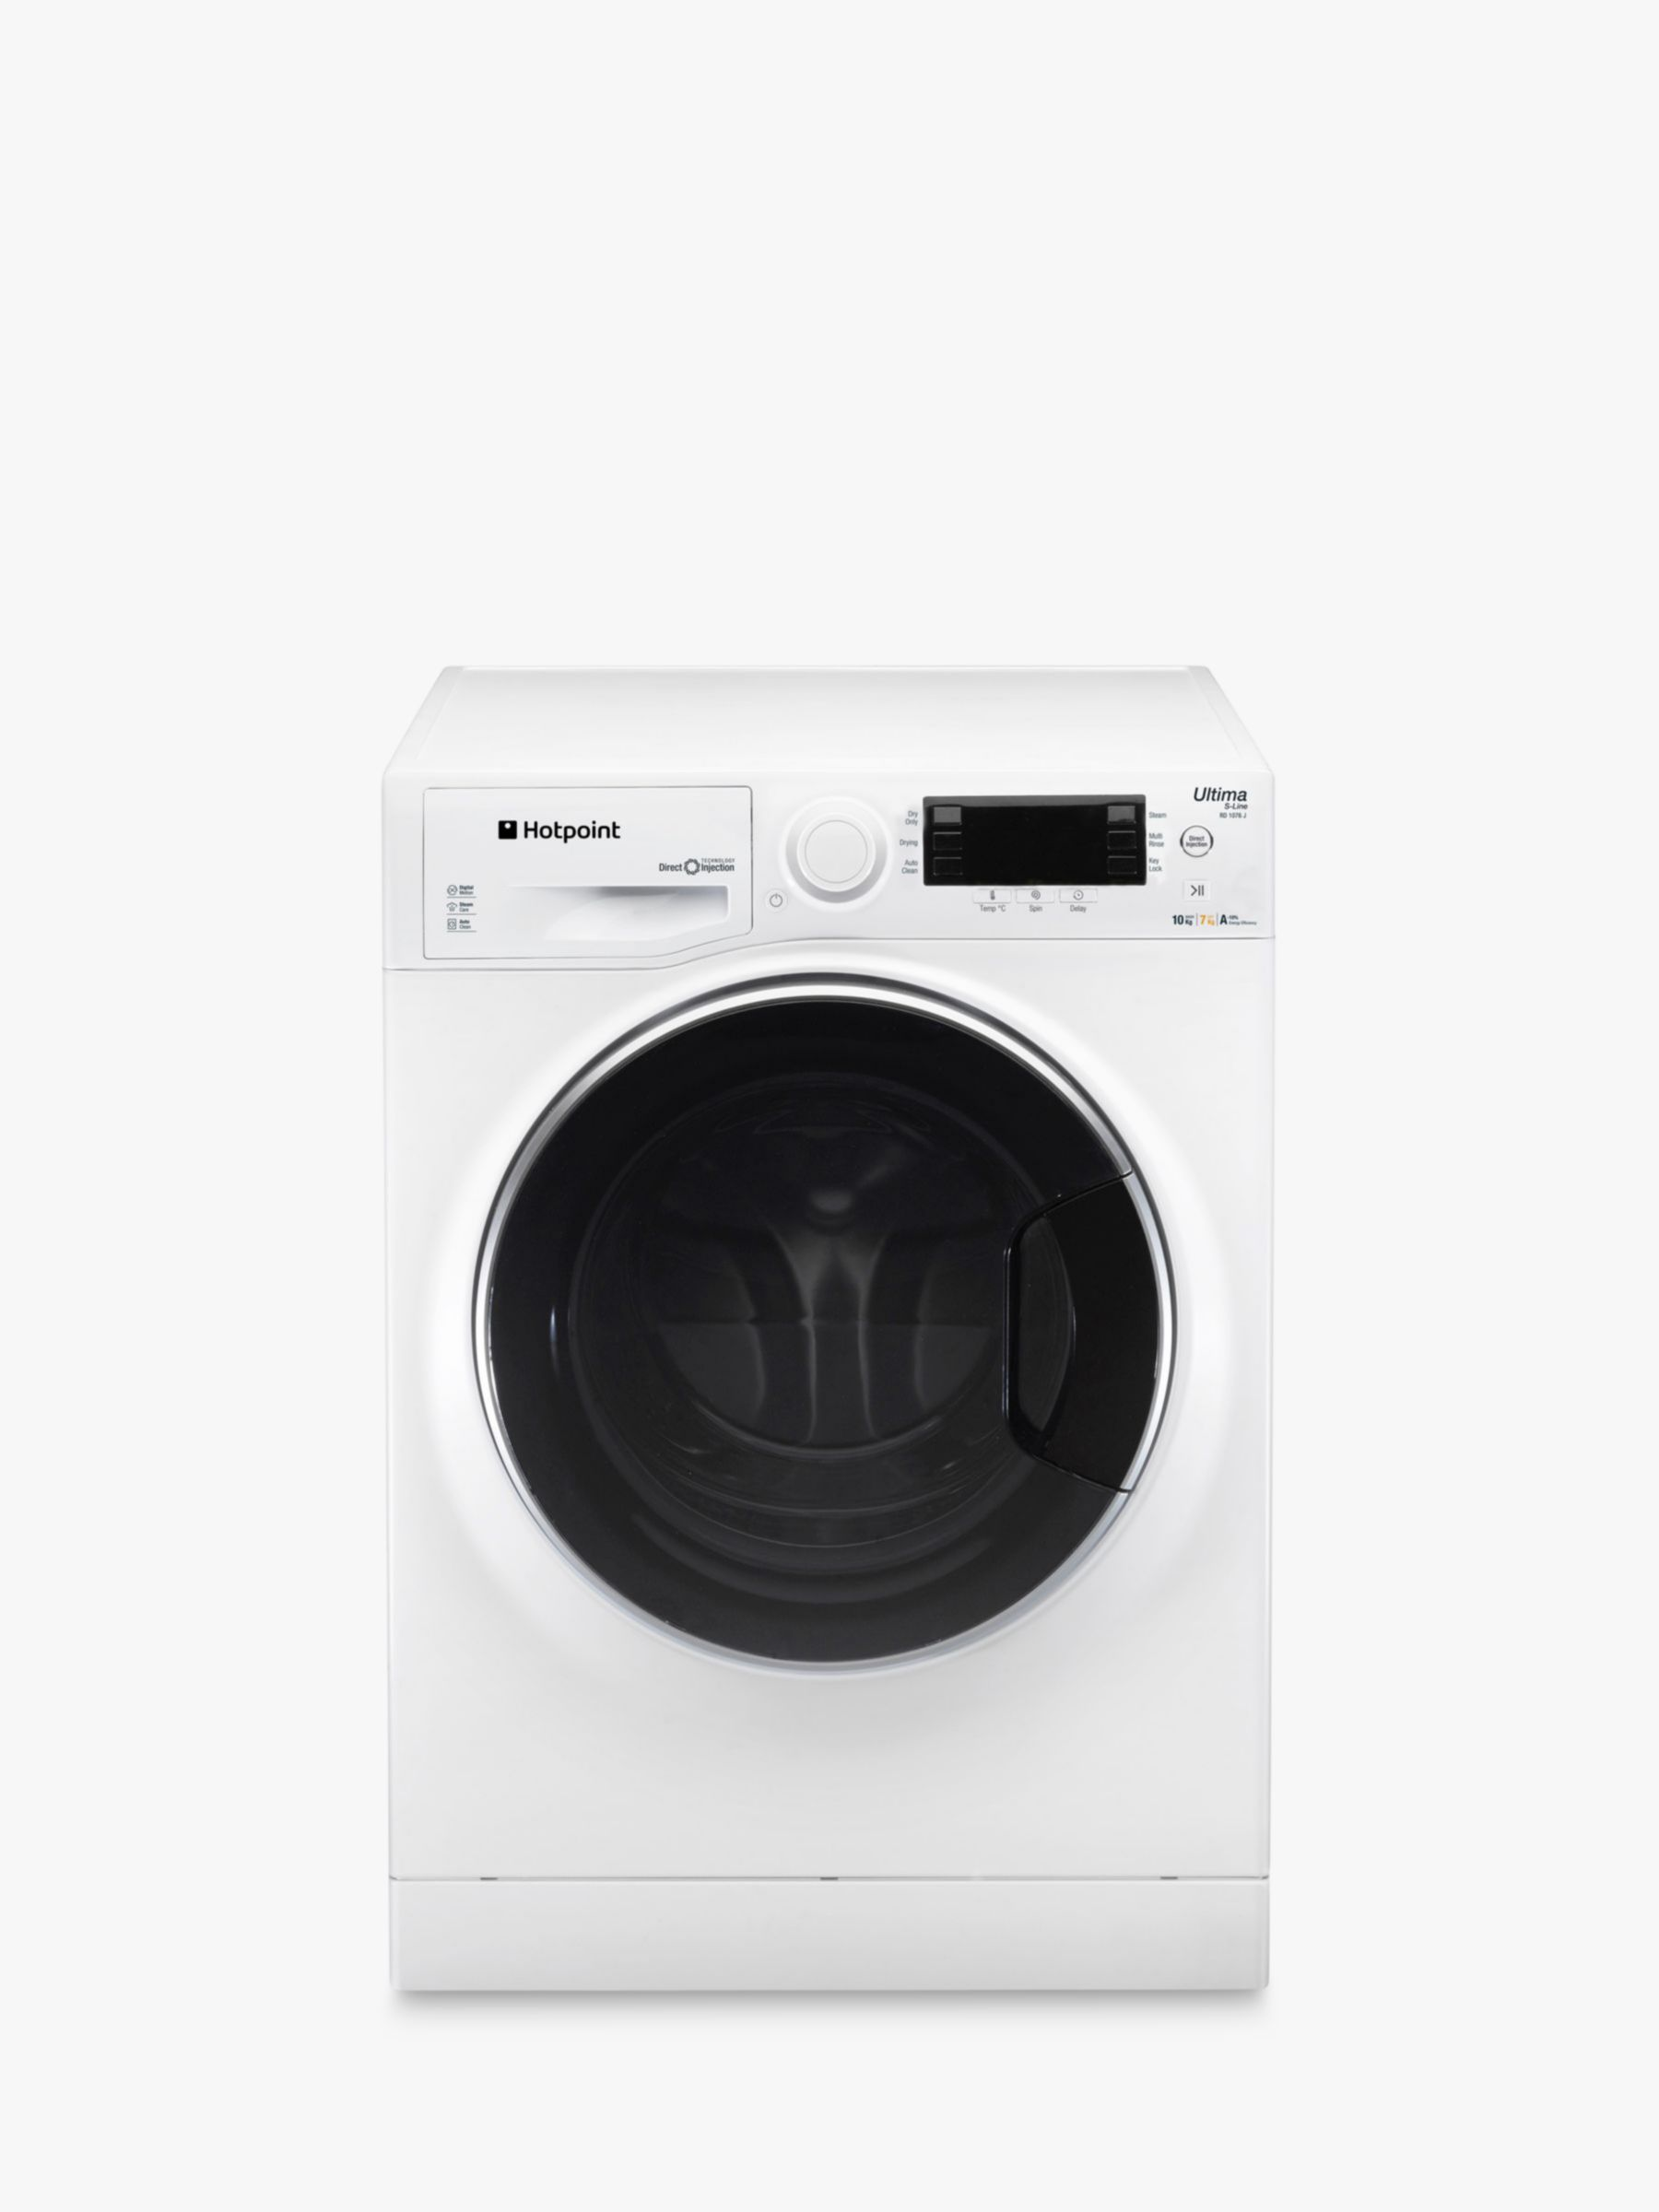 Hotpoint Hotpoint RD1076JDUK Washer Dryer, 10kg Wash/7kg Dry Load, A Energy Rating, 1600rpm Spin, White